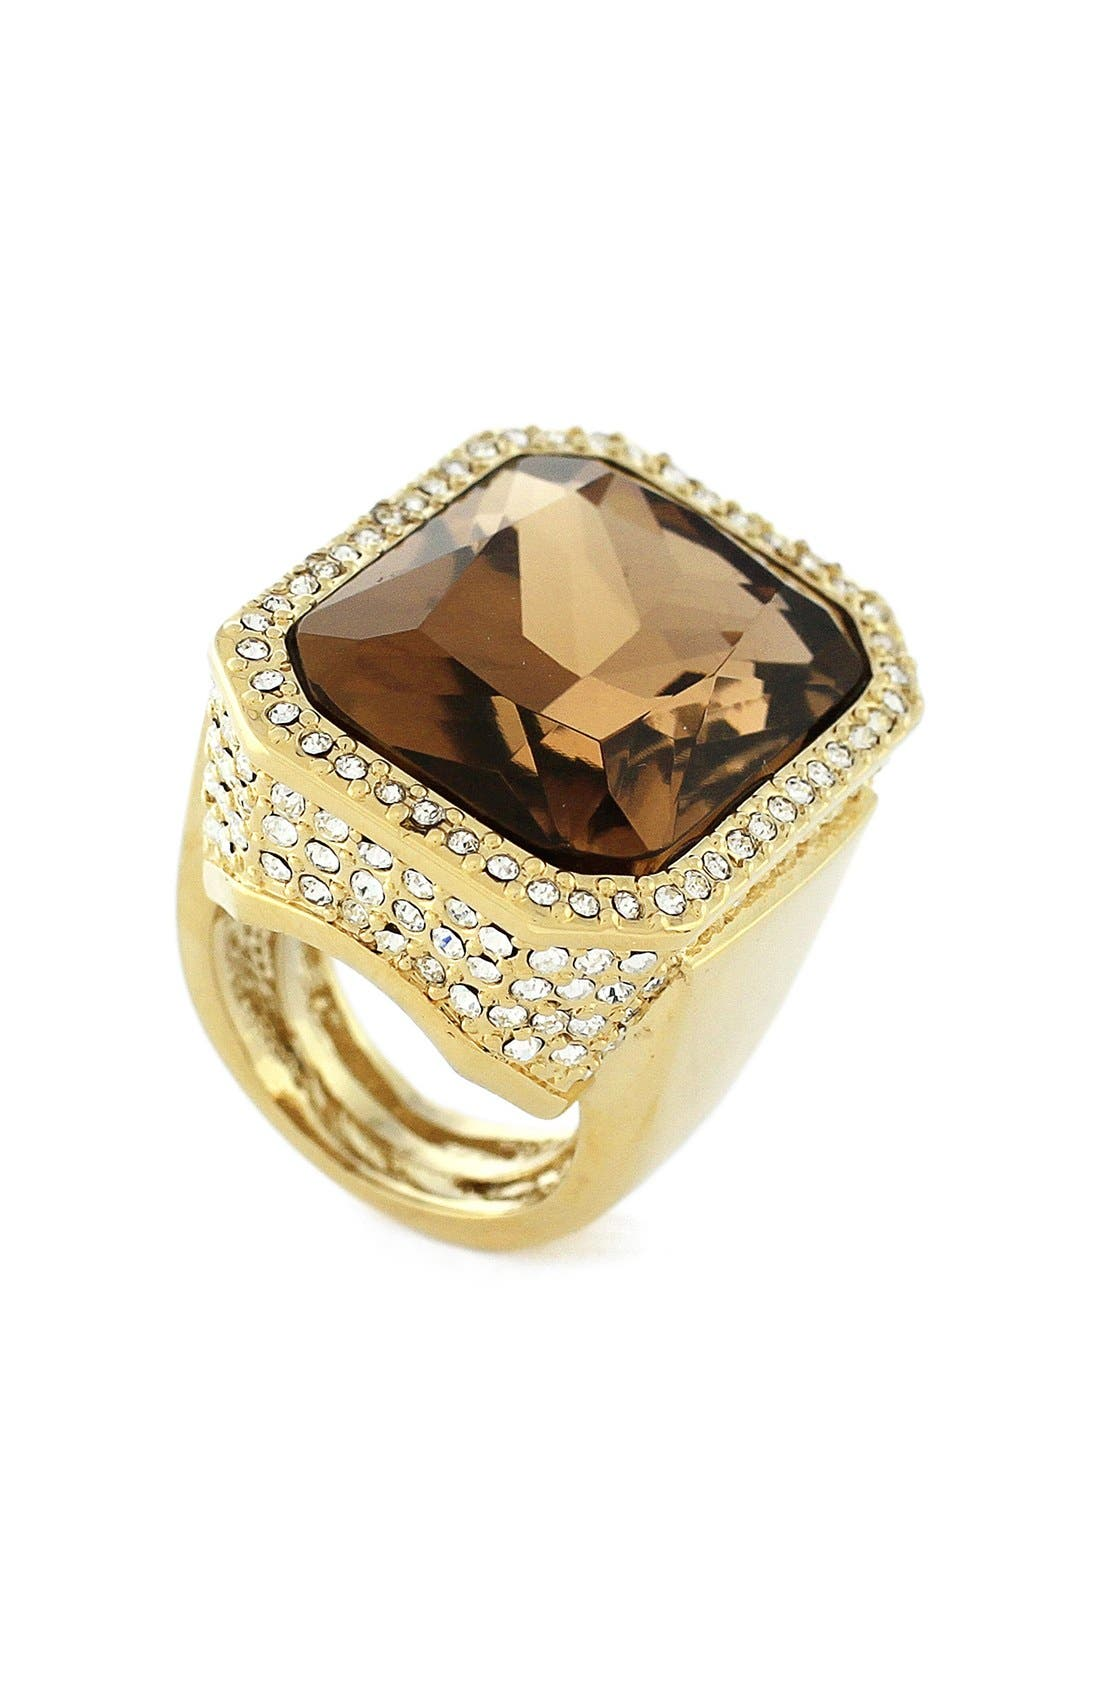 Main Image - Vince Camuto Cocktail Ring